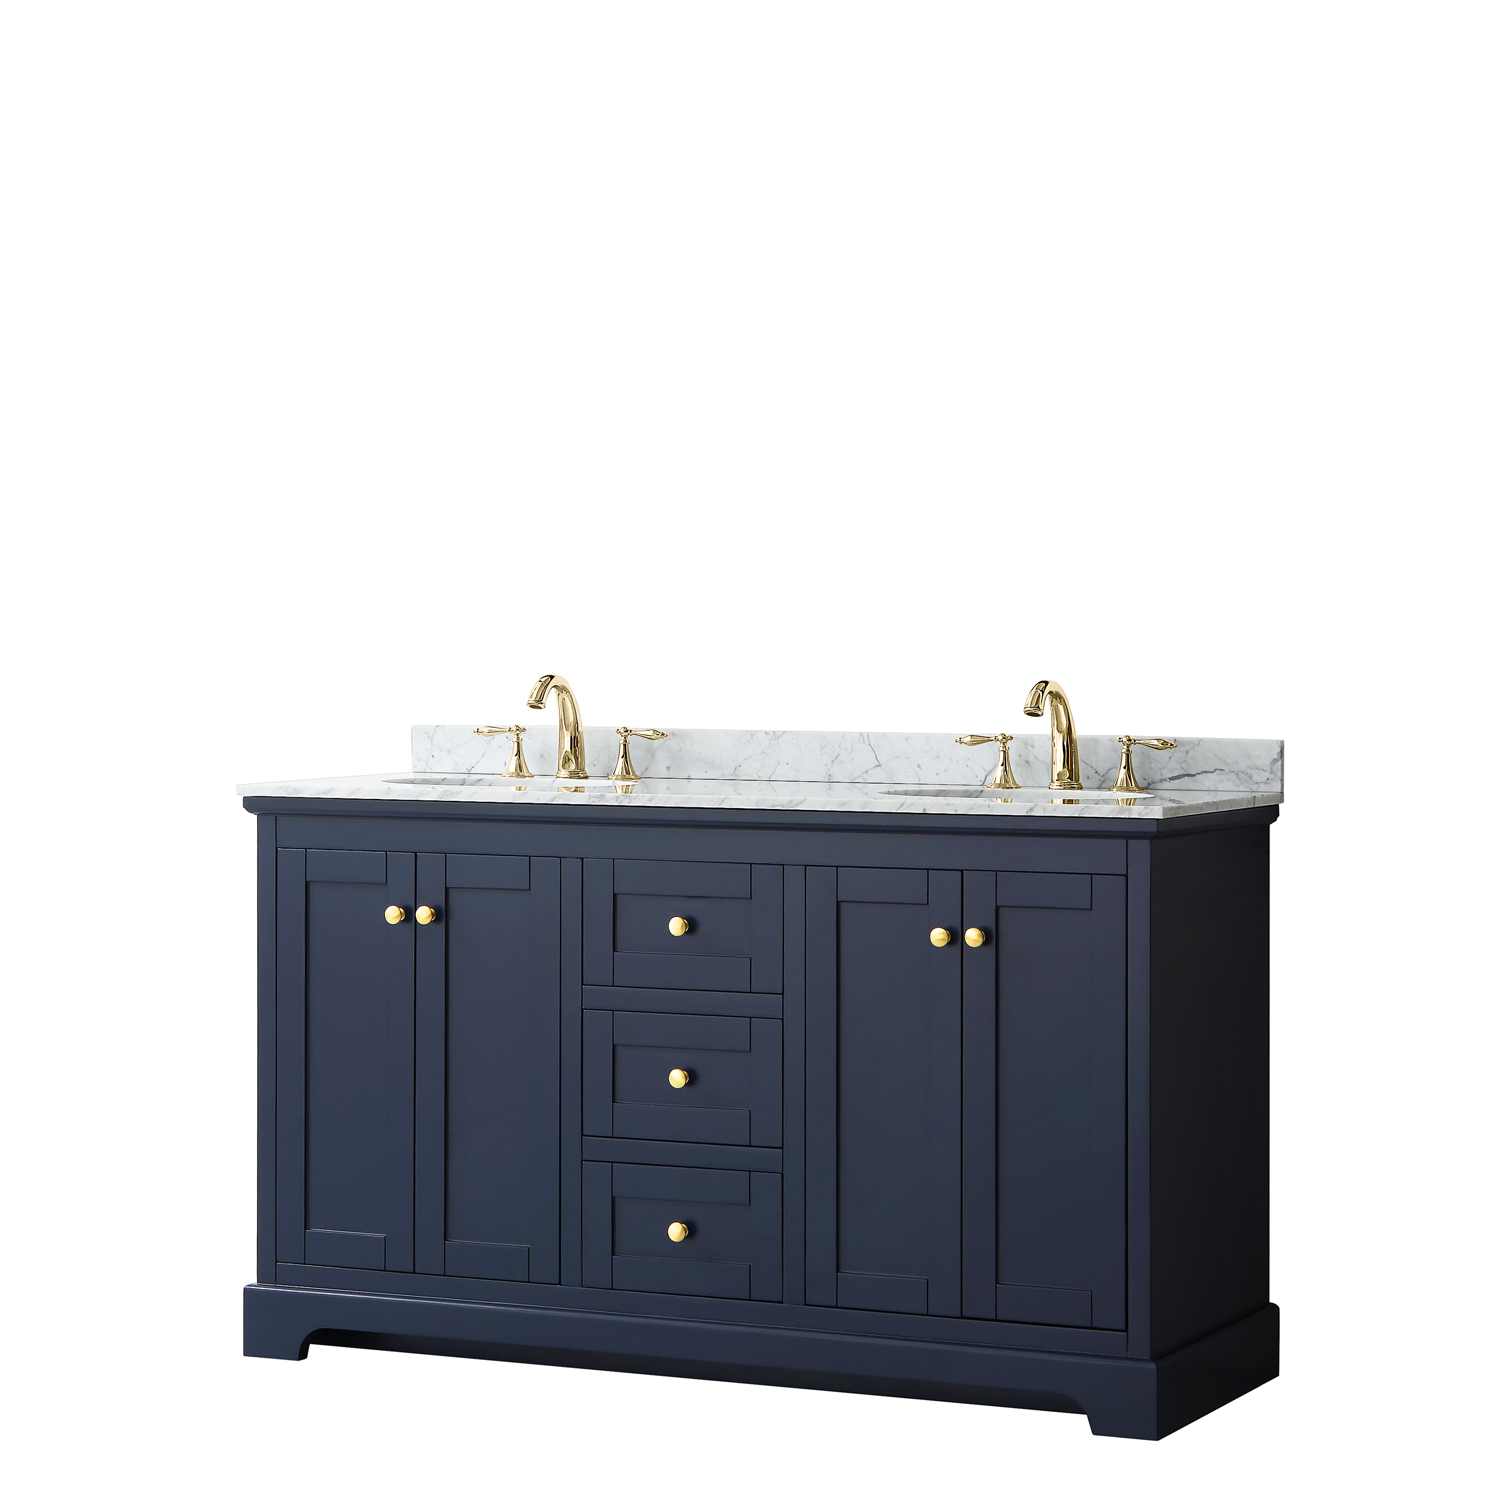 "60"" Double Bathroom Vanity in Dark Blue, No Countertop, No Sinks, and No Mirror"